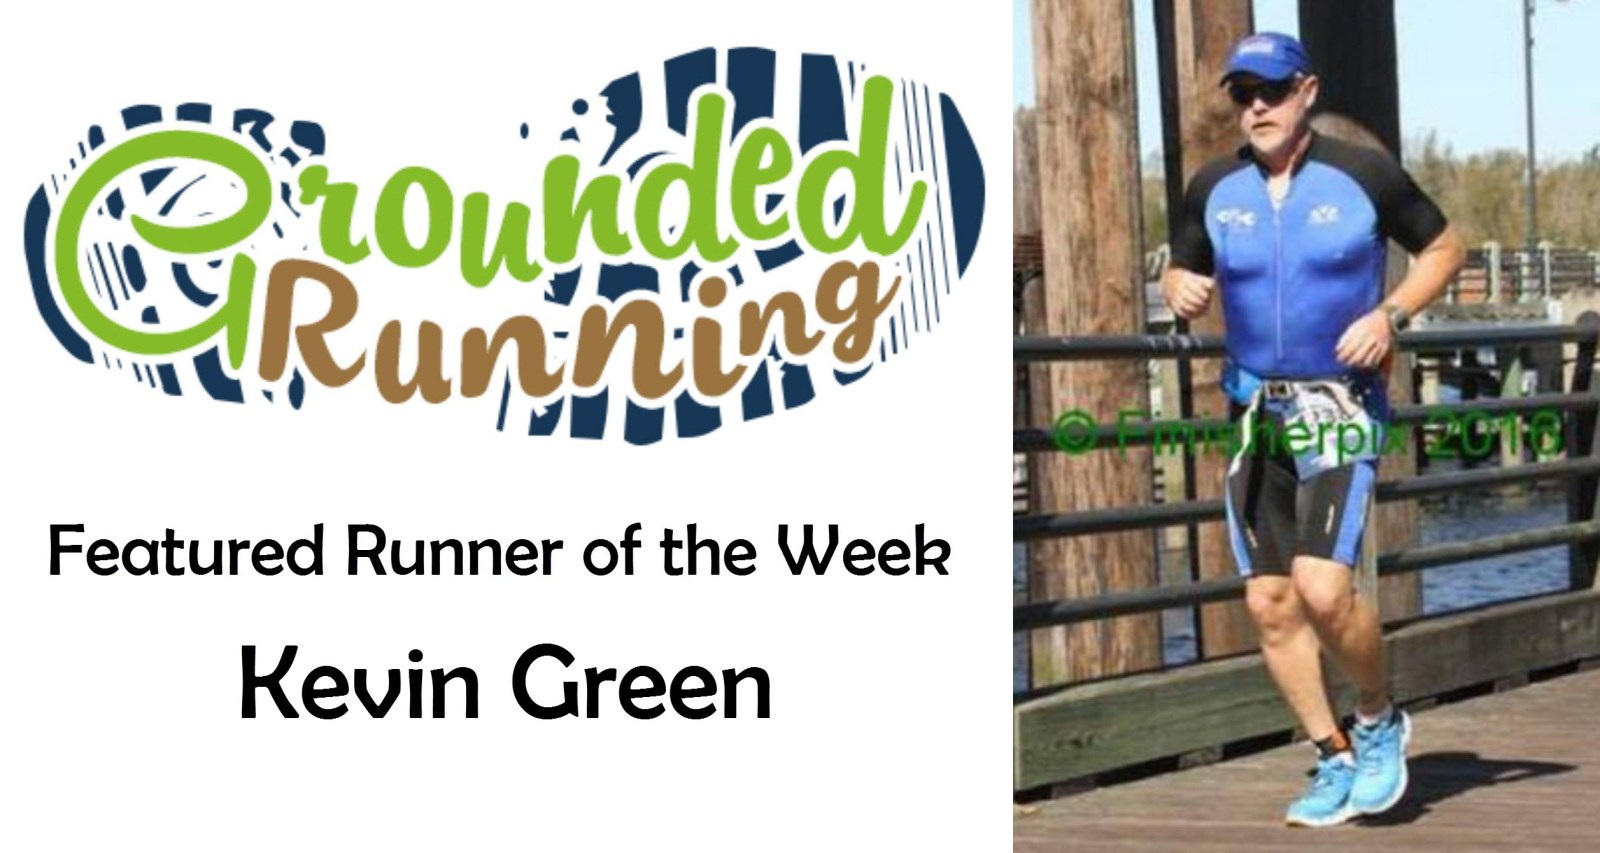 Kevin Green - Featured Runner of the Week